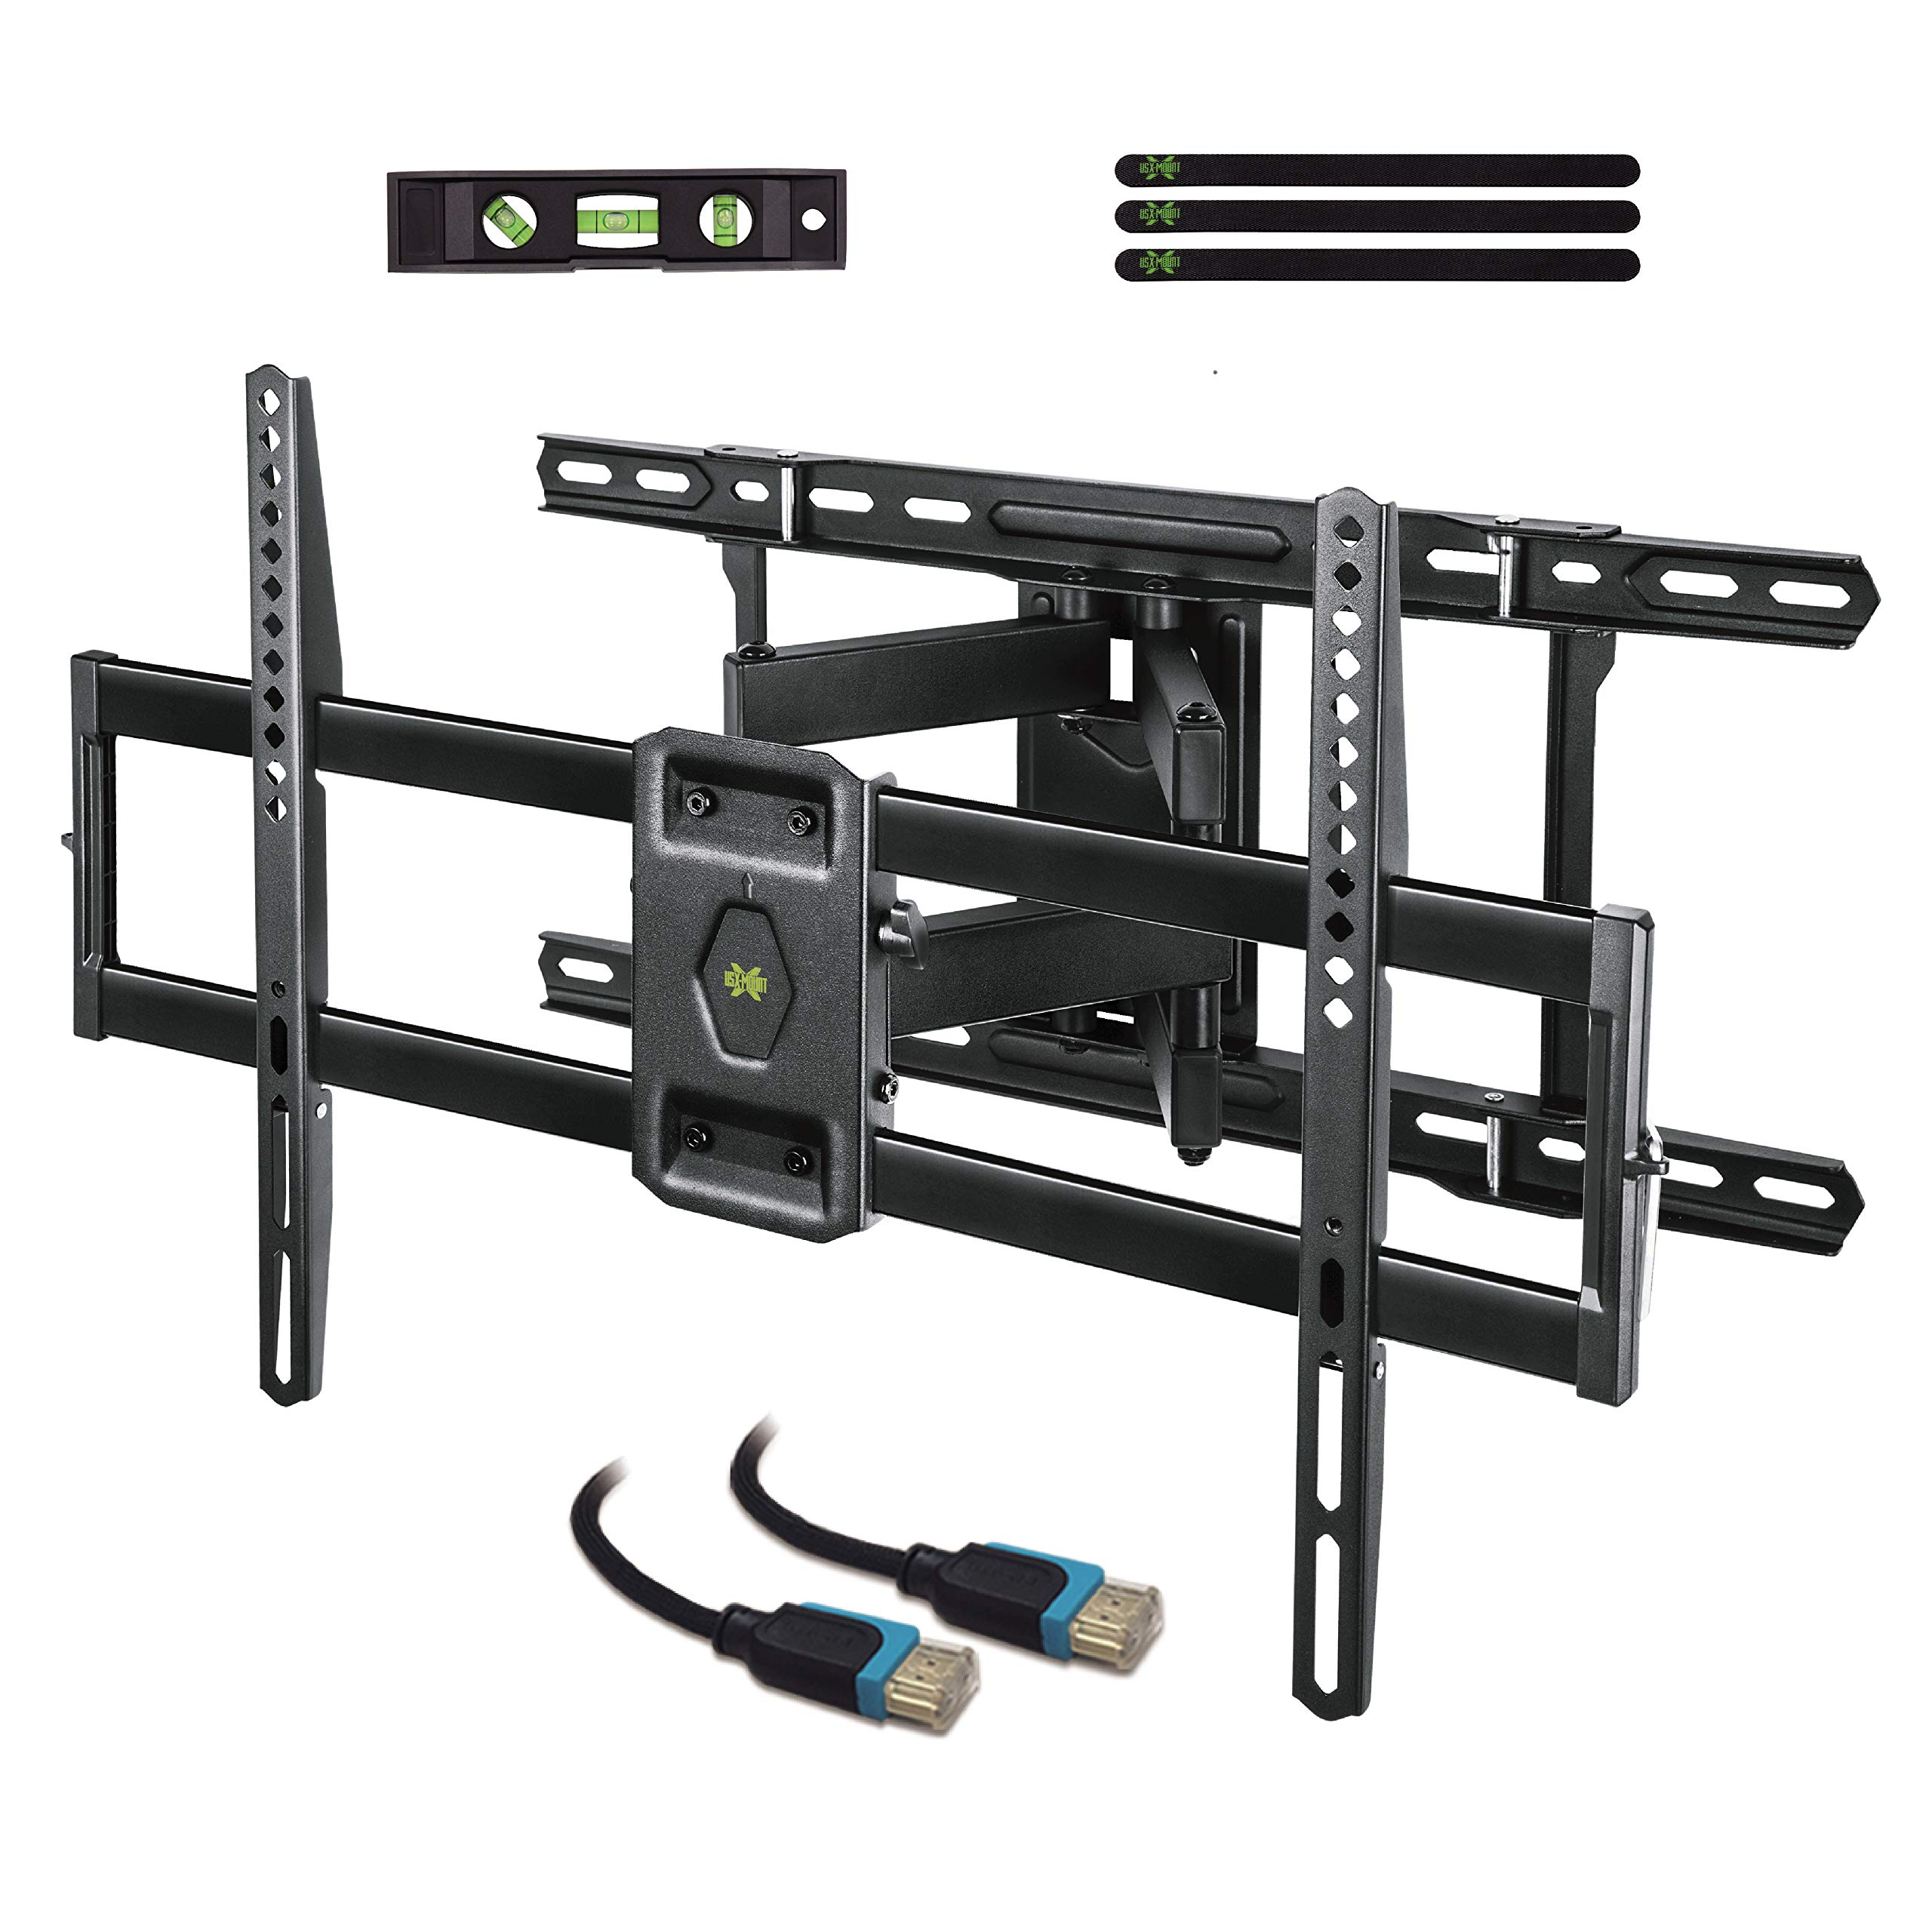 USX MOUNT Full Motion TV Mount Wall Bracket with Articulating Arms for 42''-80'' Flat Screen LED LCD 4K TV, Tilt Swivel TV Mounts with Max VESA 600x400mm, Weight Capacity 99lbs Up to 24'' Wood Stud